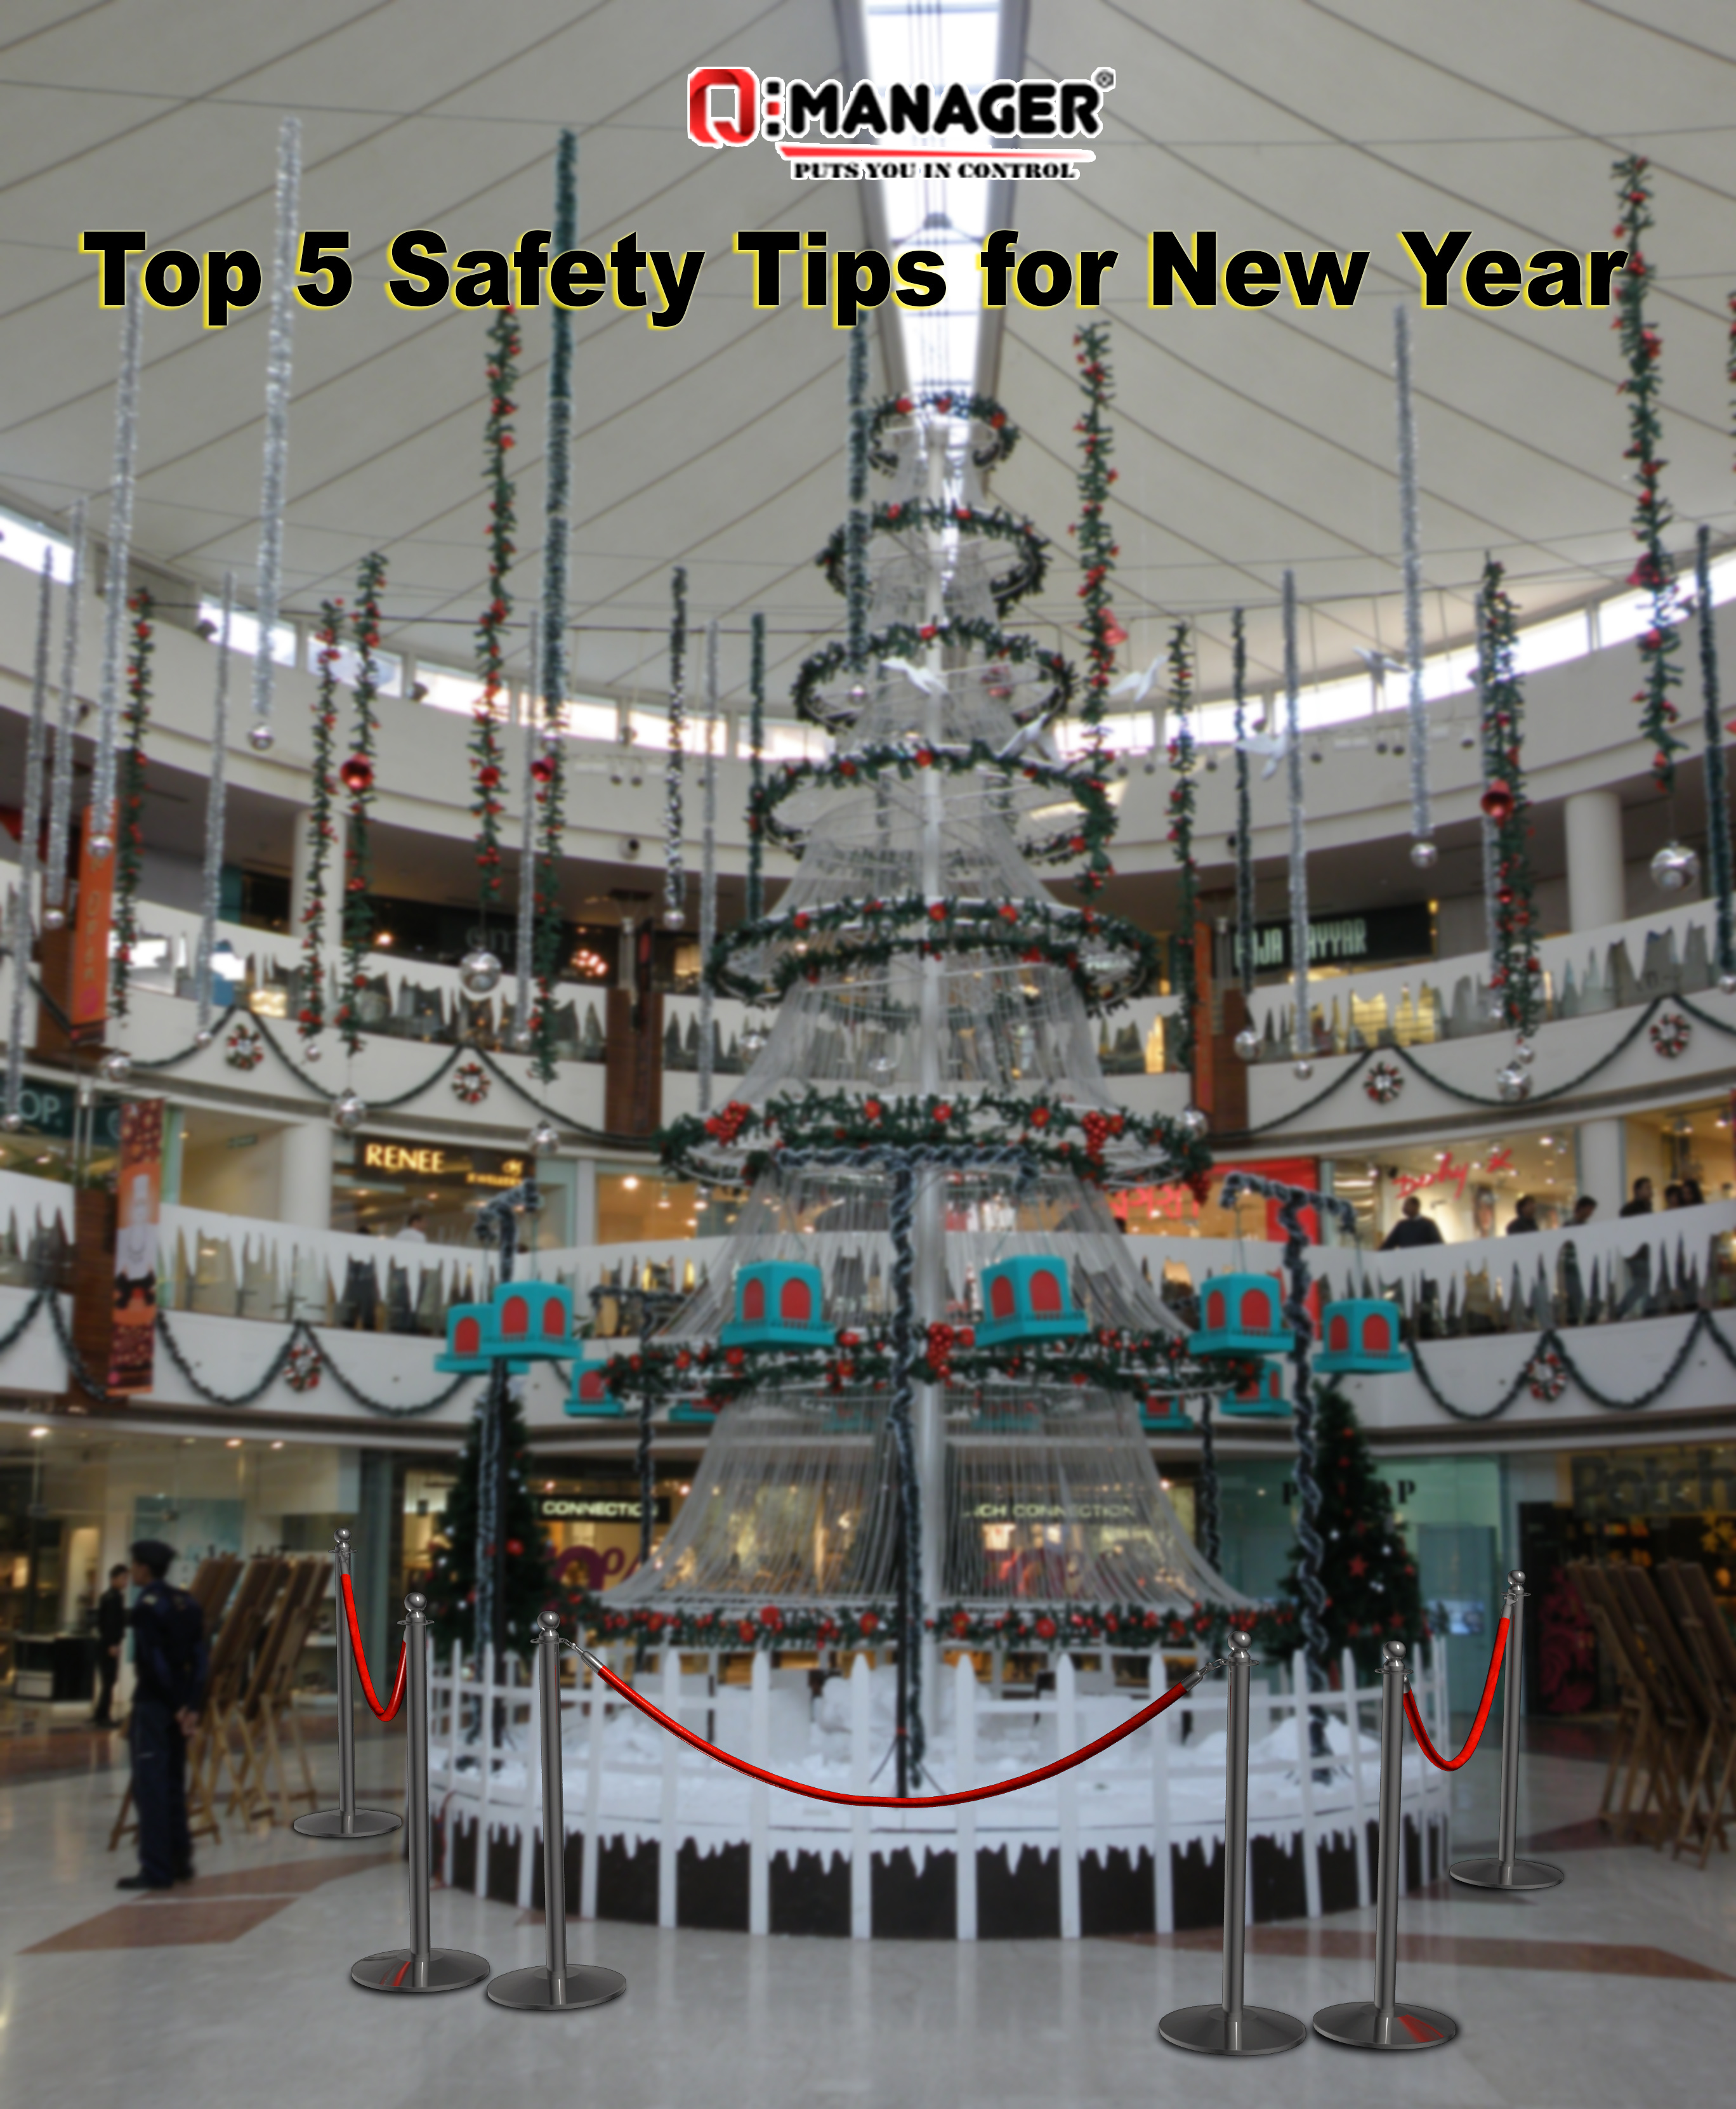 Top 5 Safety Tips for New Year